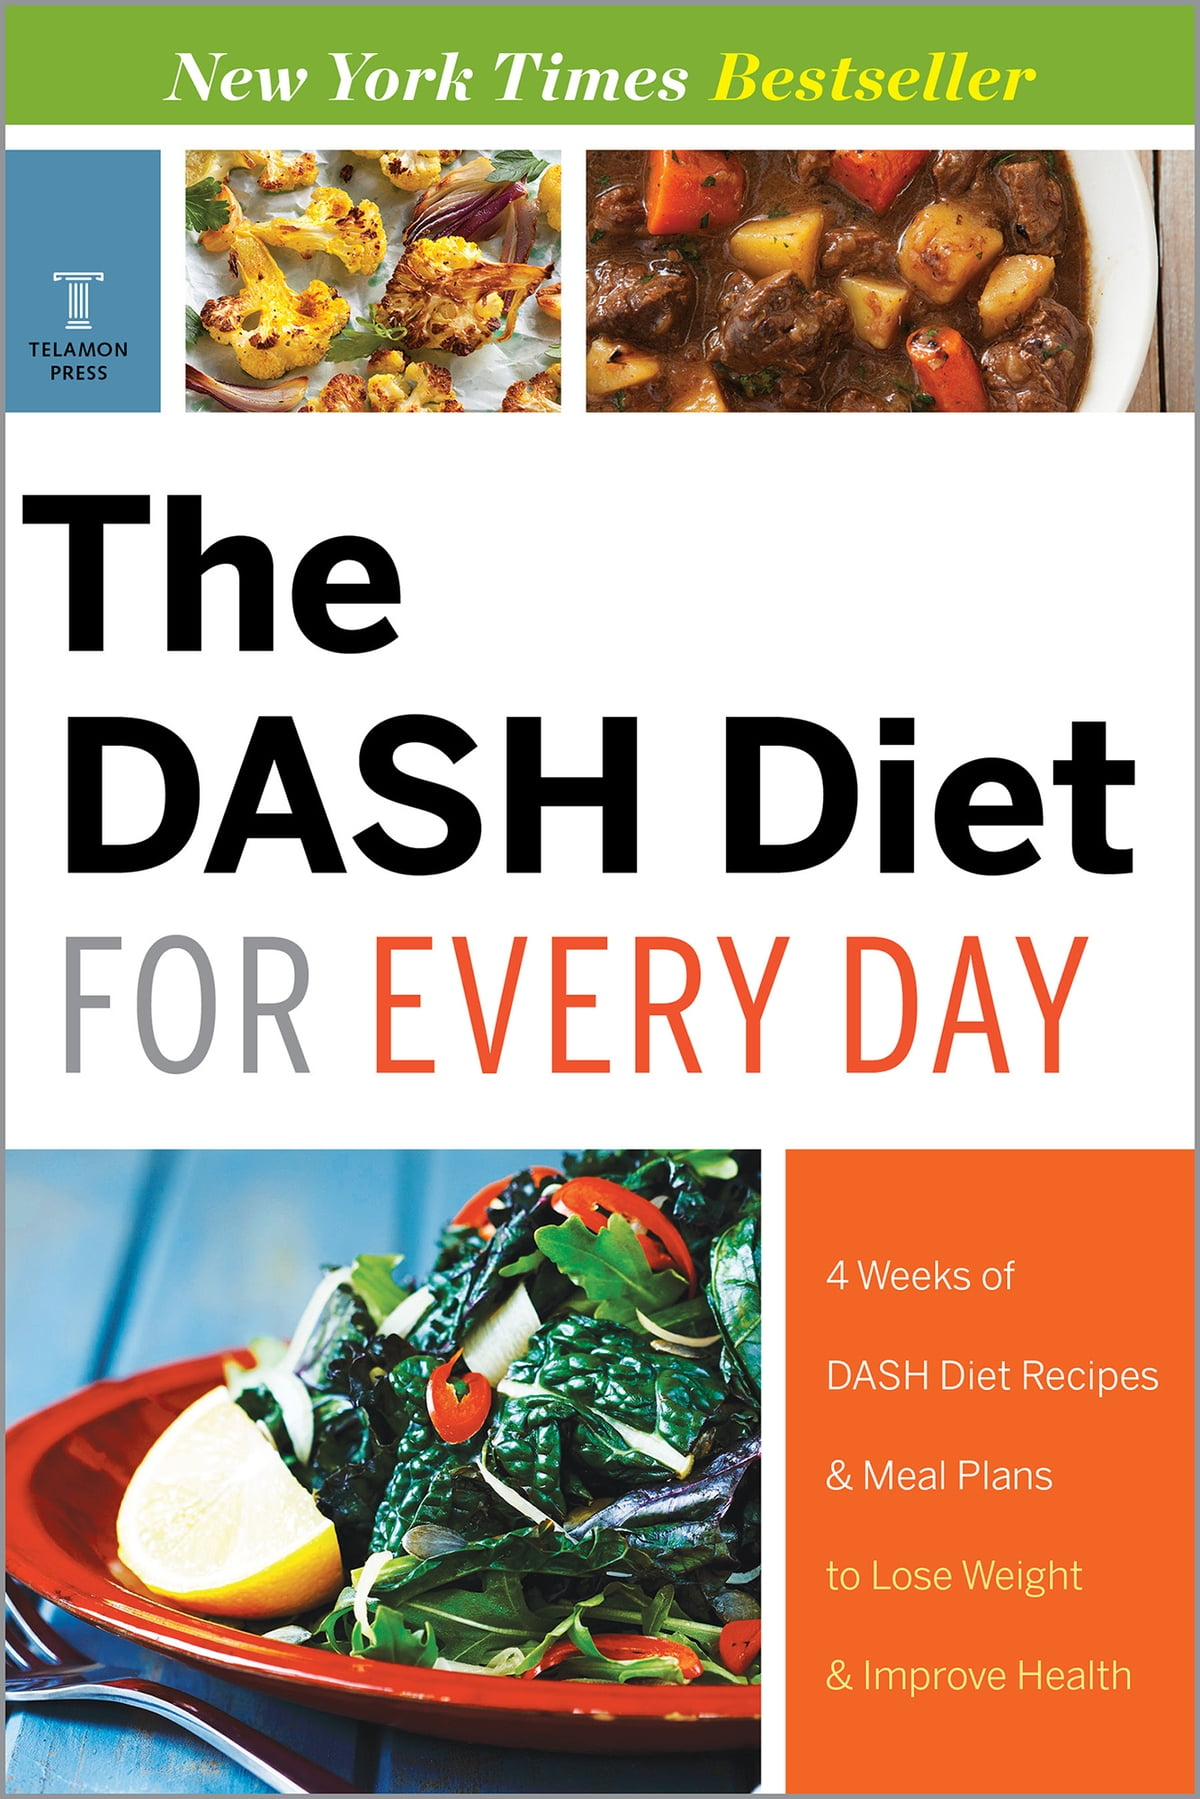 4 Day Diet Plans: The DASH Diet For Every Day: 4 Weeks Of DASH Diet Recipes